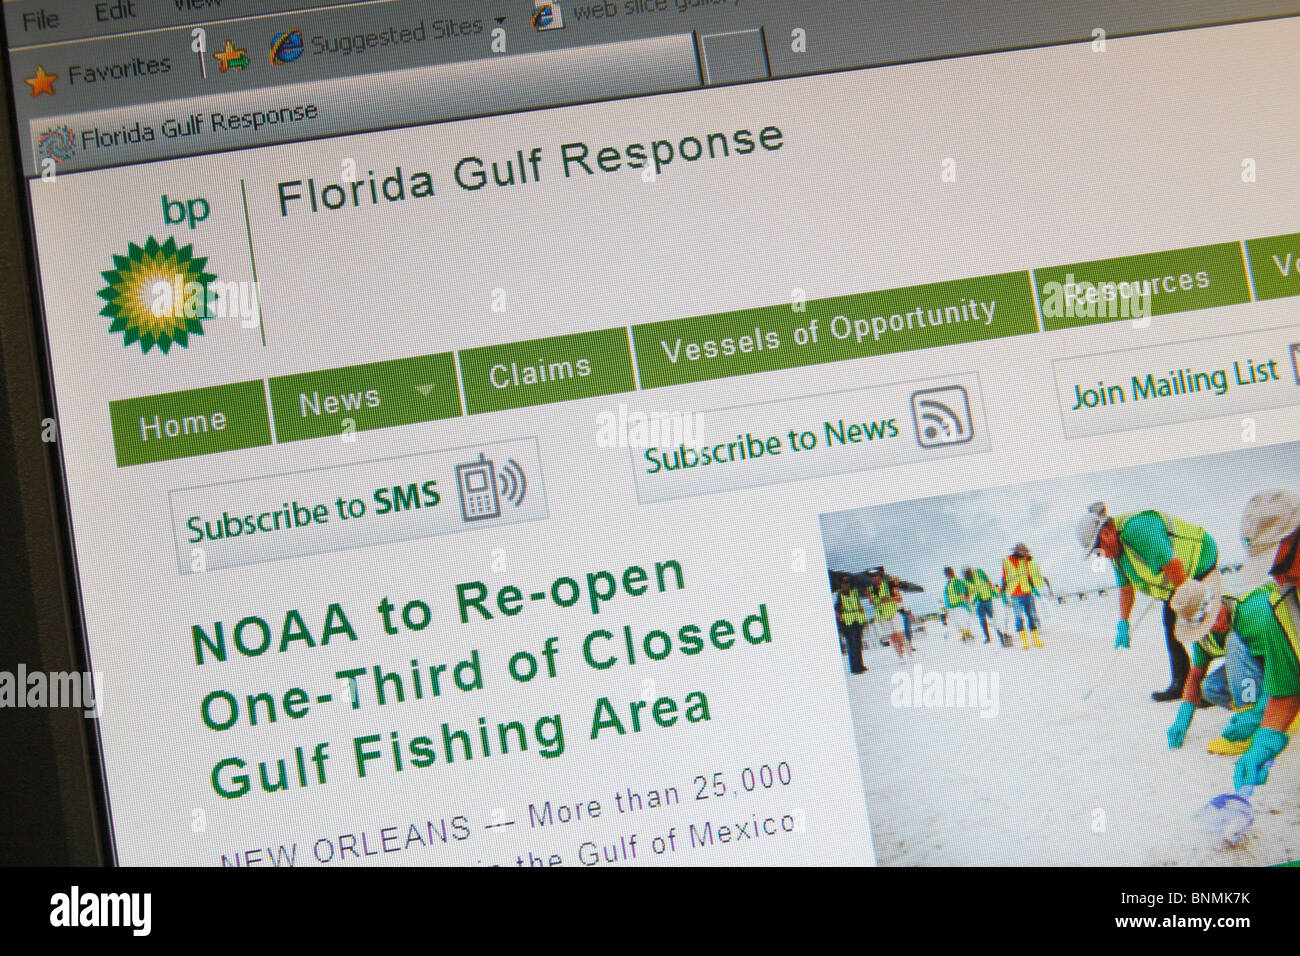 A screen shot of the BP web site for the Florida Gulf Response on the 2010 Oil Spill disaster in the Gulf of Mexico. - Stock Image